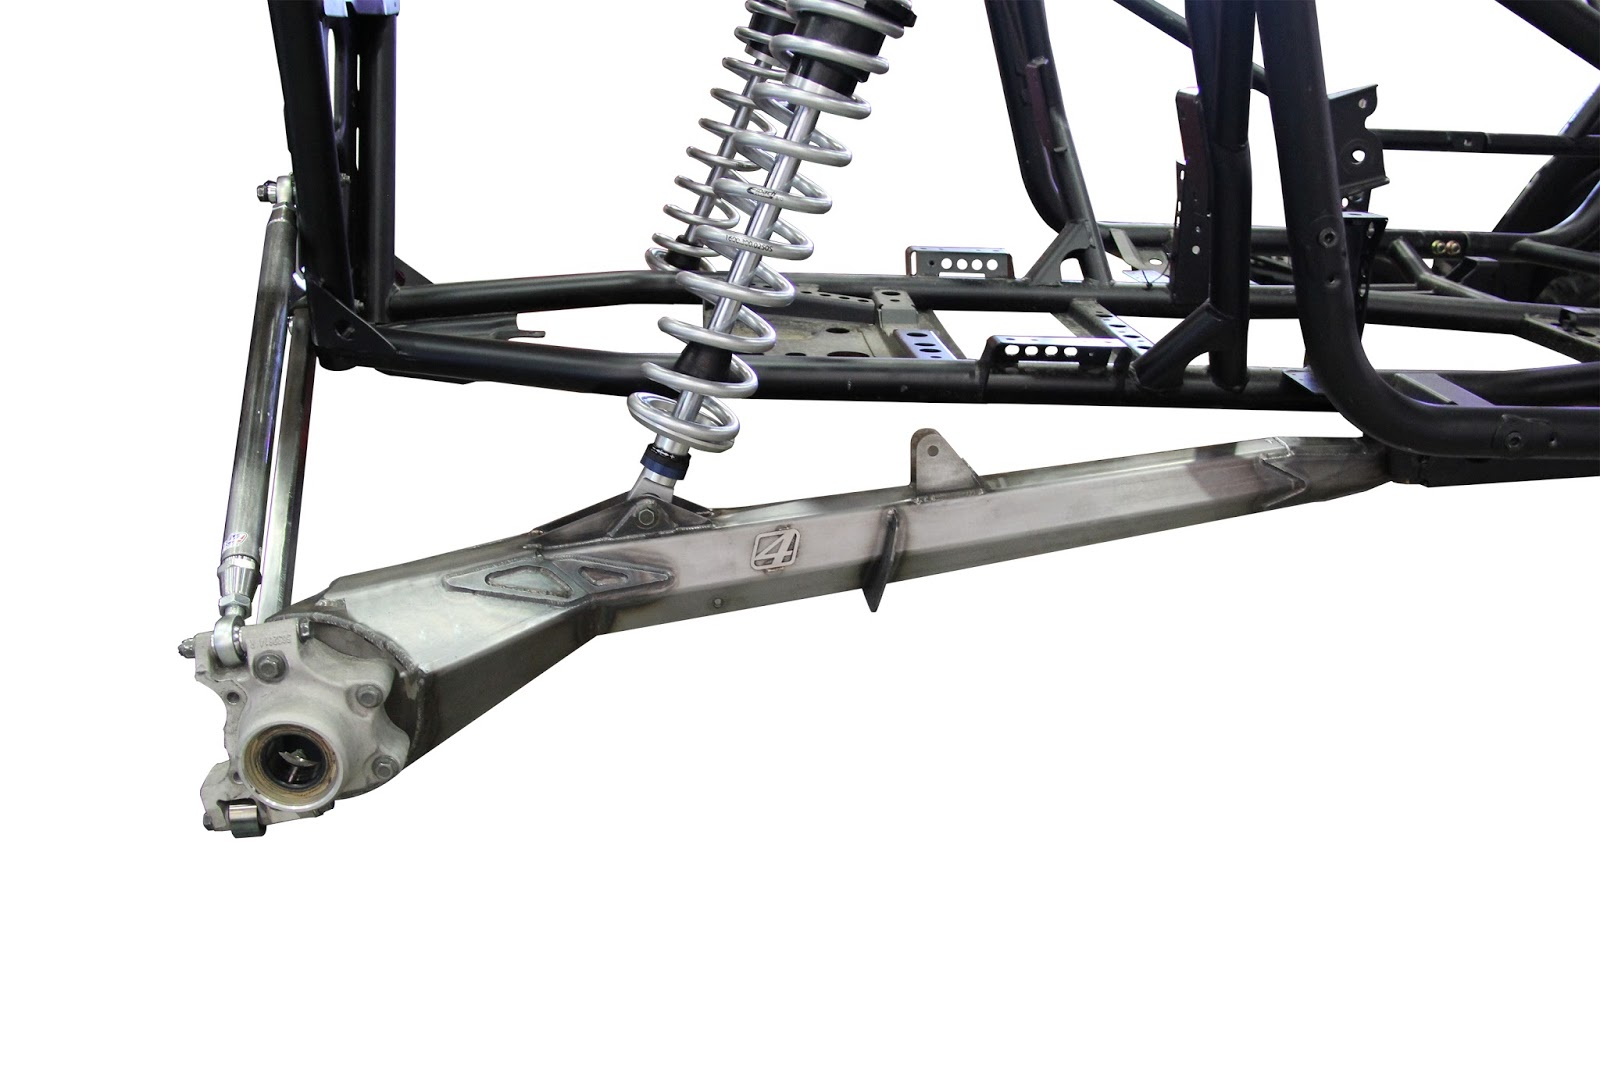 Suspension Design Report Grounded 4 Releases High Performance Suspension Components